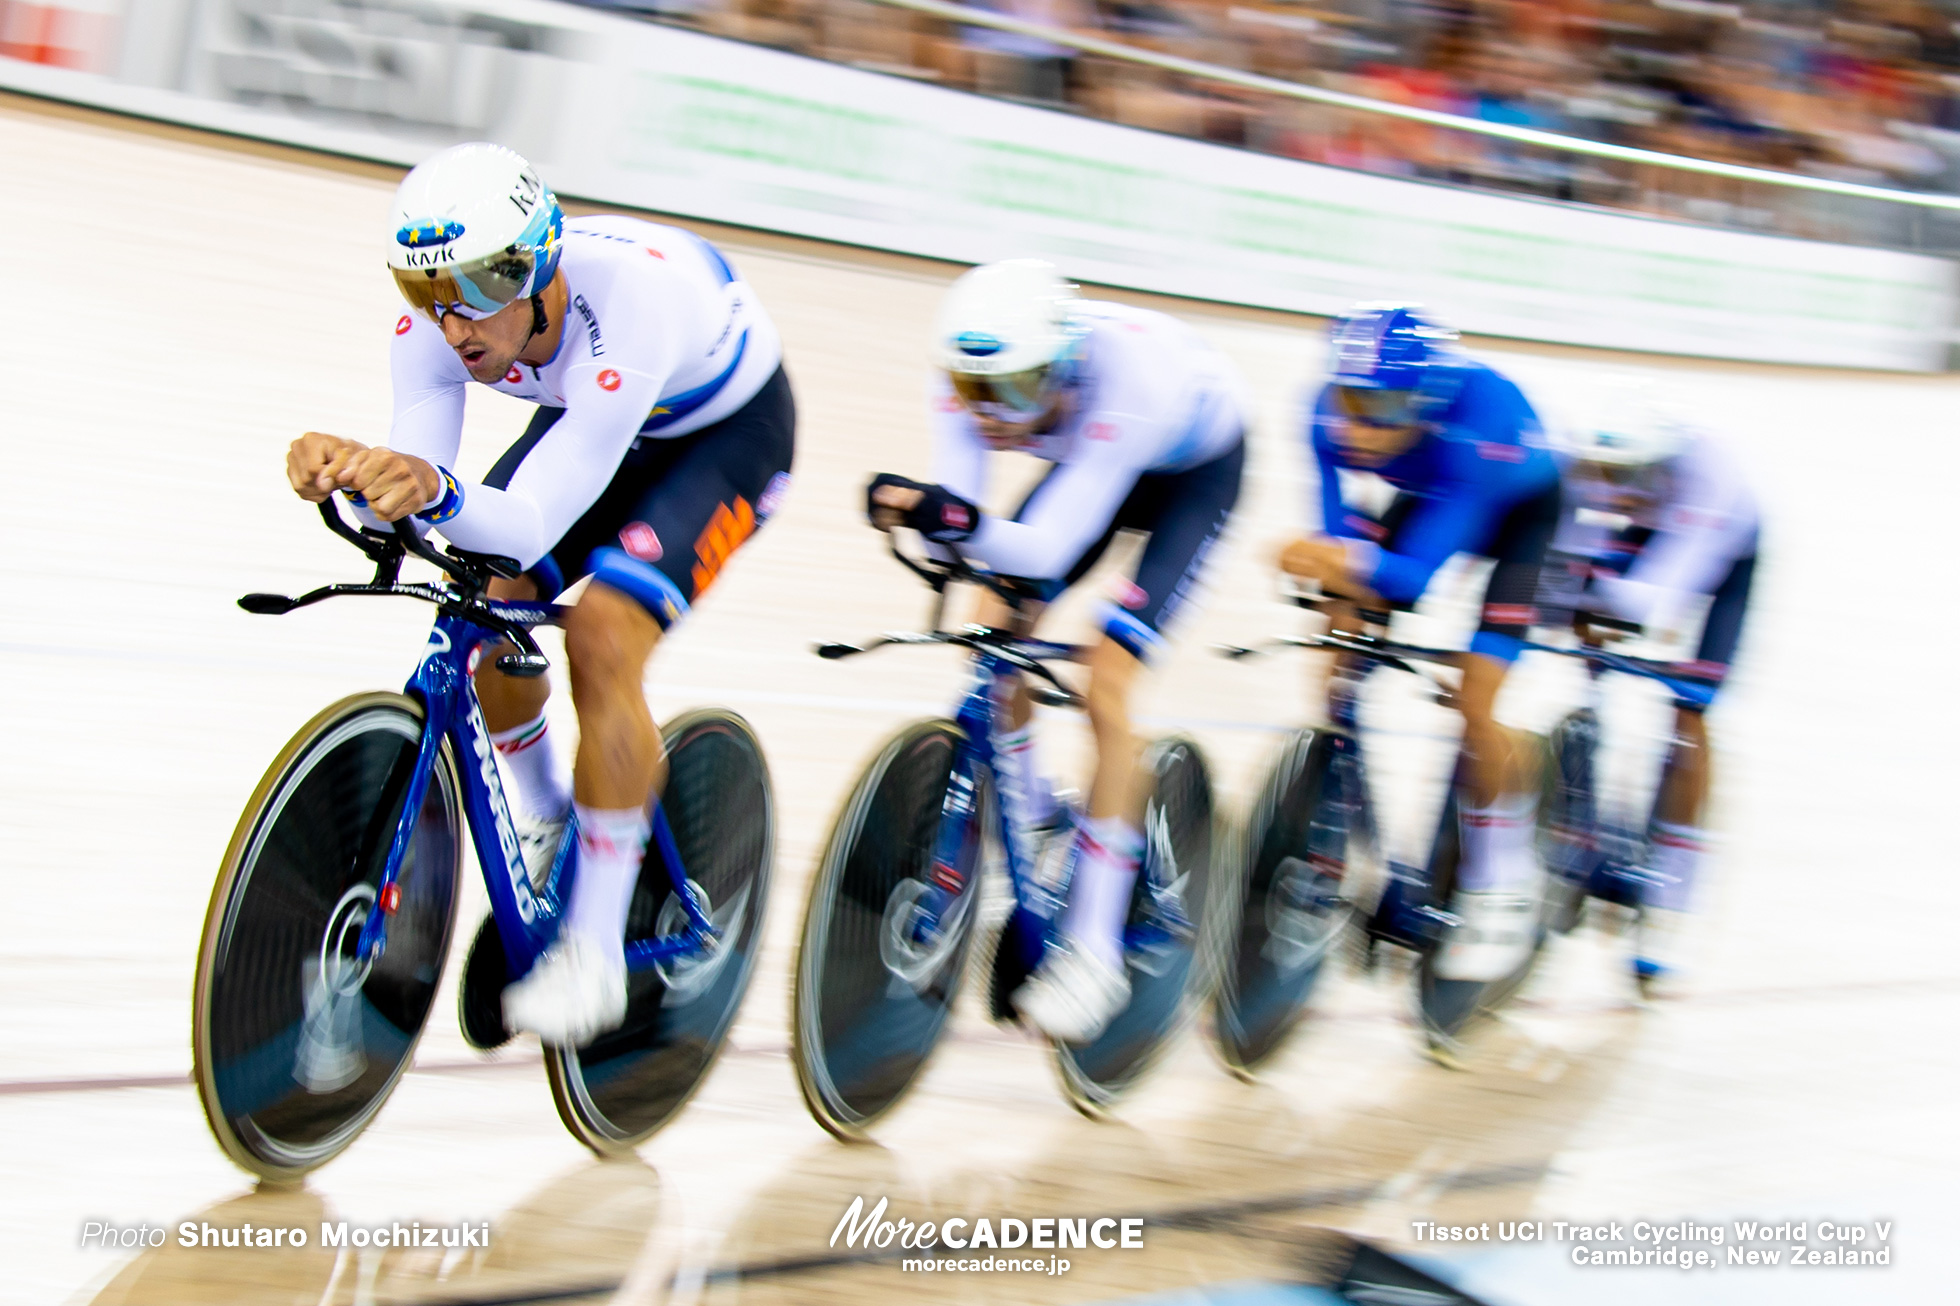 1st Round / Men's Team Pursuit / Track Cycling World Cup V / Cambridge, New Zealand